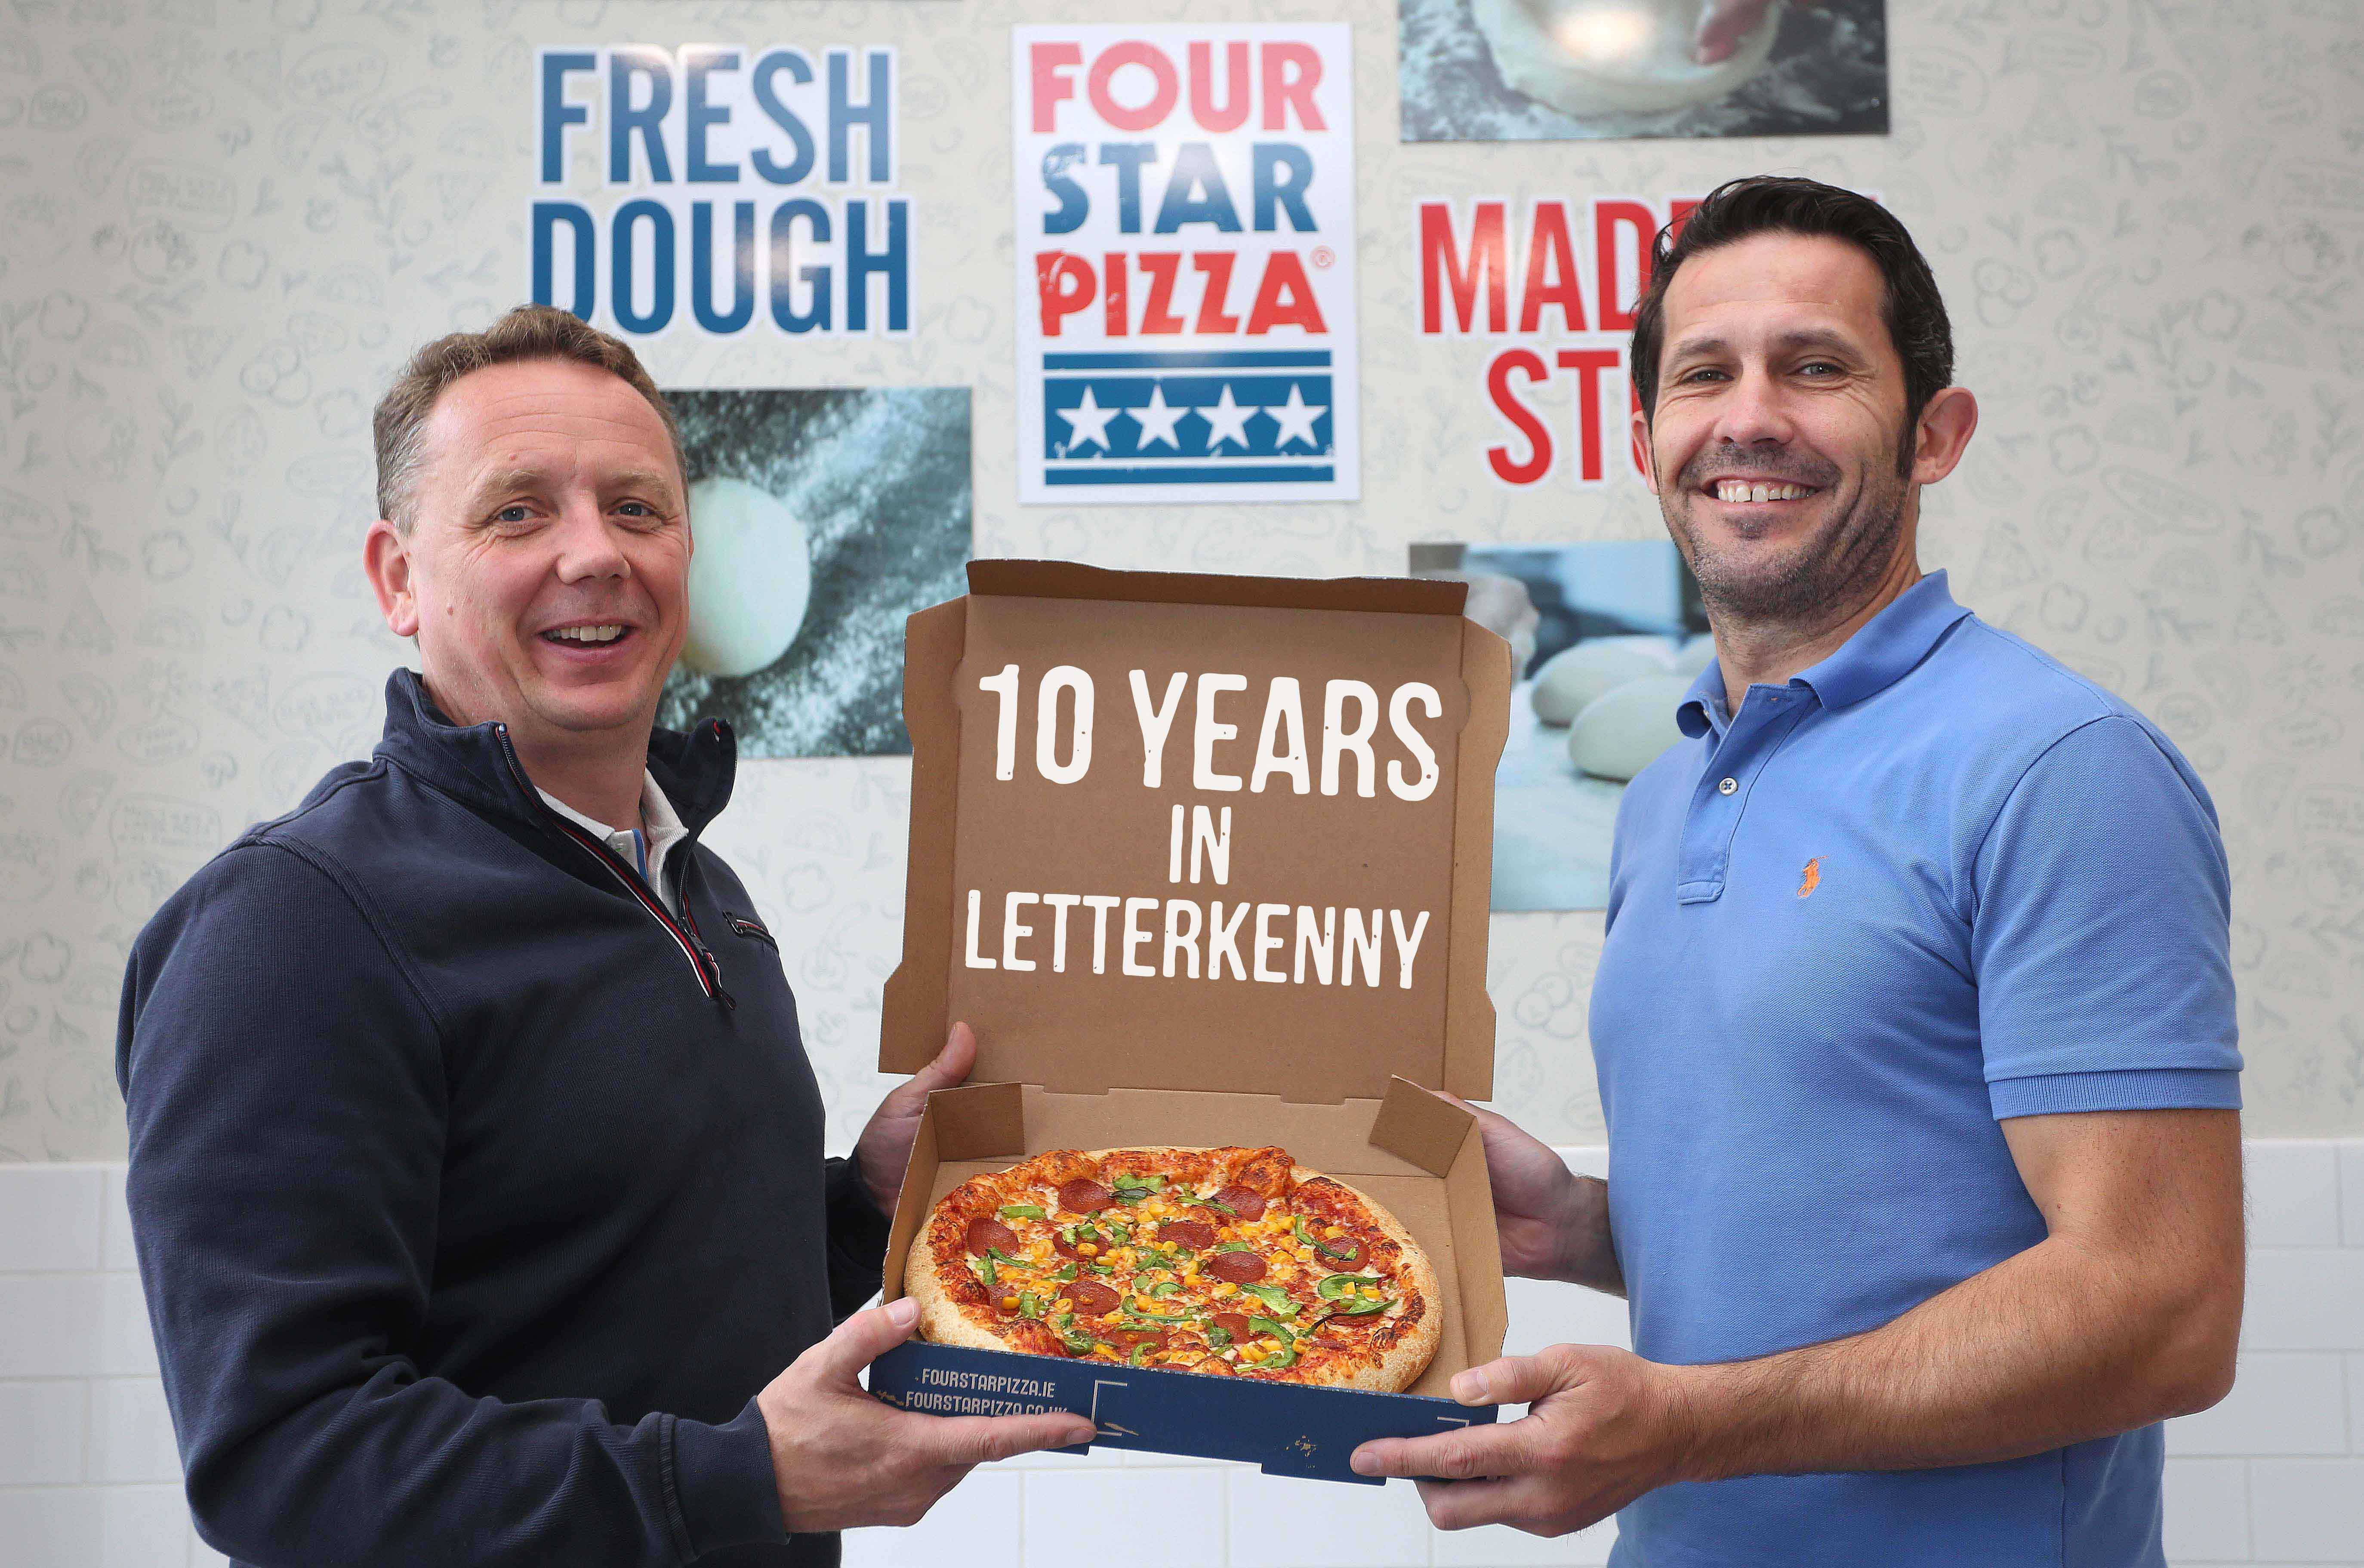 Four Star Pizza Celebrates 10 Years In Letterkenny Duffy